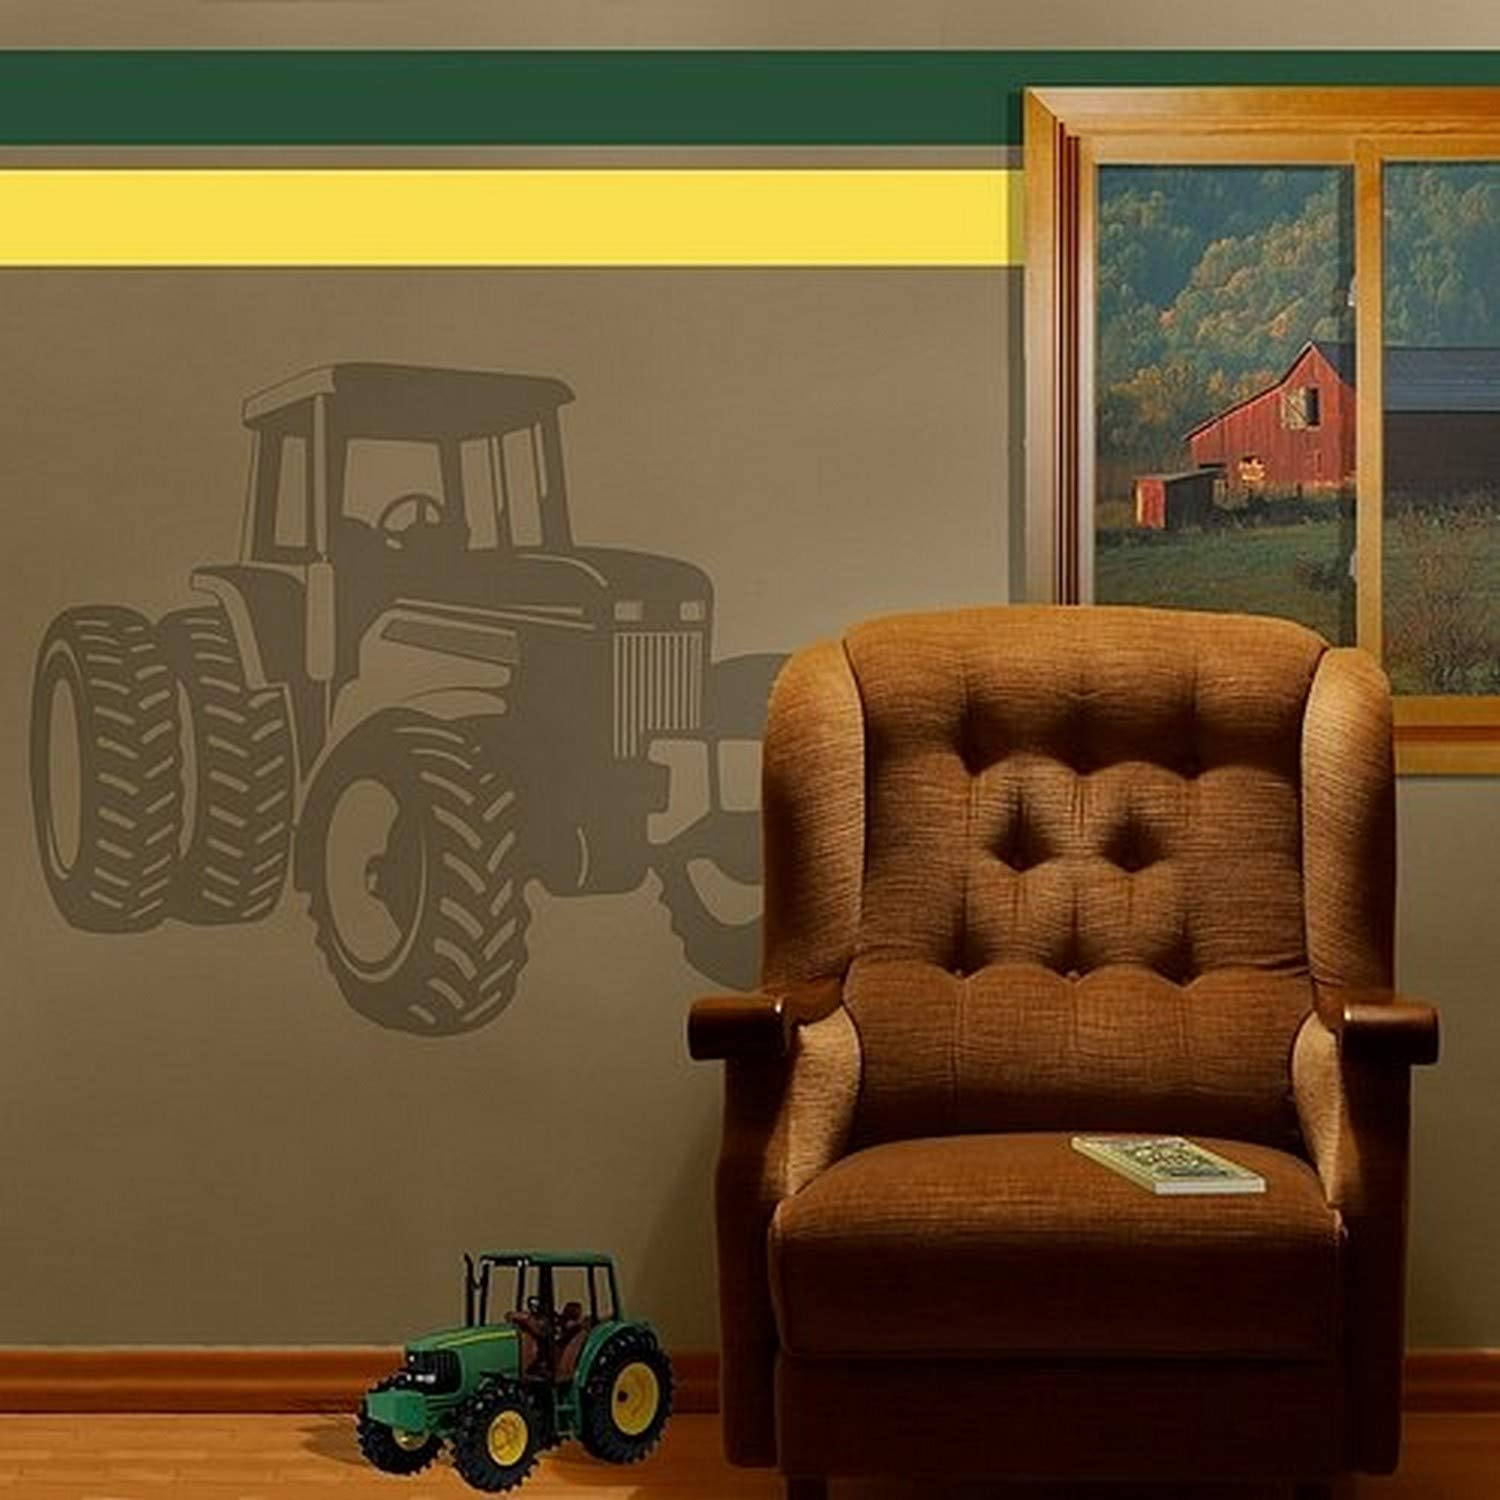 Borders Unlimited Tractor Sudden Shadow, Mutli